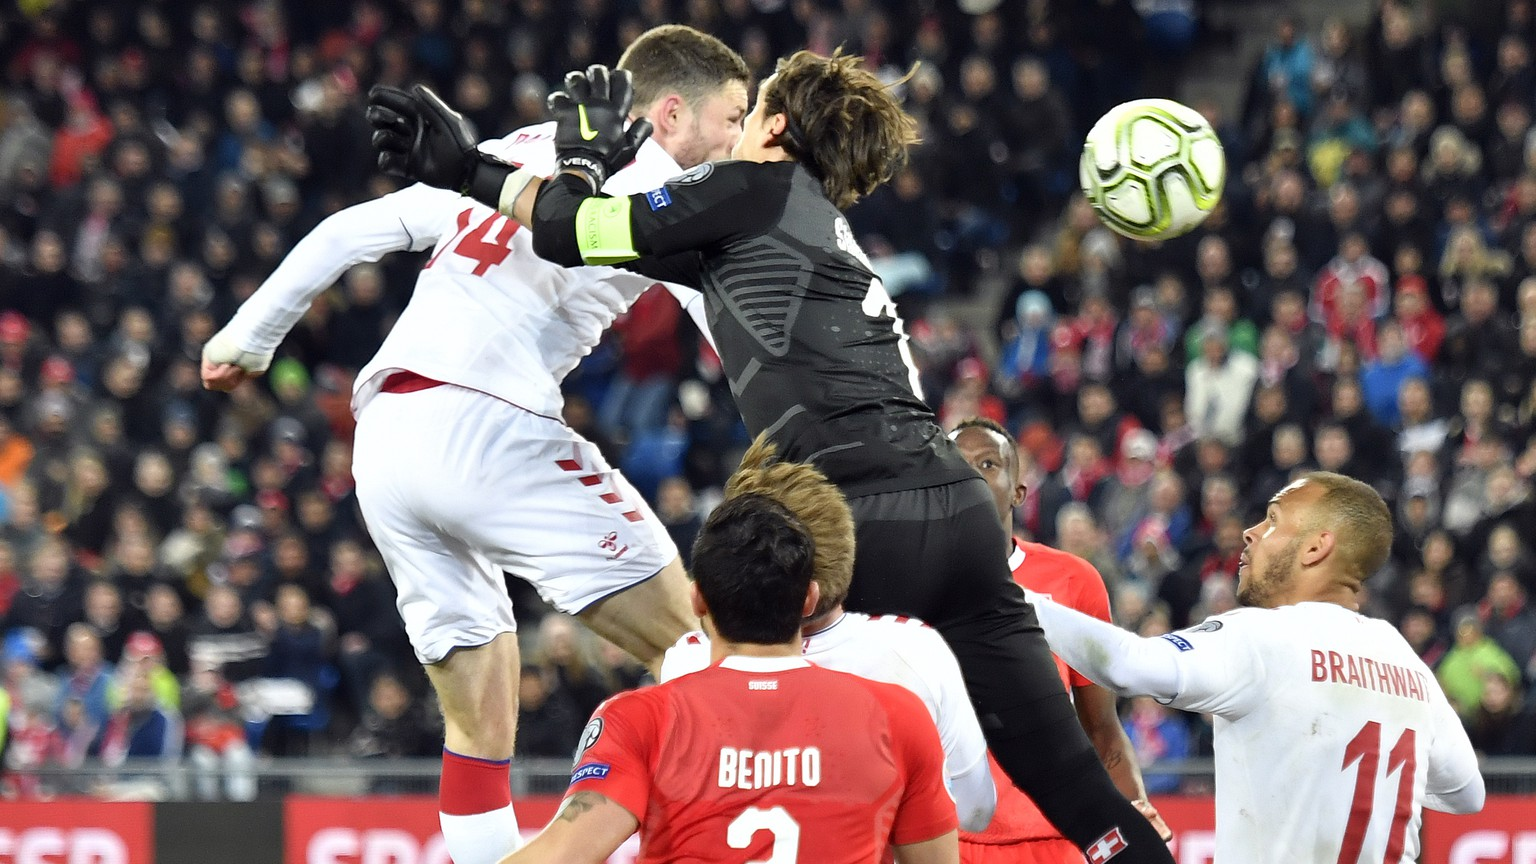 epa07465730 Denmark's Henrik Dalsgaard, left, scores the 3-3 against Switzerland's goalkeeper Yann Sommer, right, during the UEFA Euro 2020 qualifying Group D soccer match between Switzerland and Denmark at the St. Jakob-Park stadium in Basel, Switzerland, 26 March 2019.  EPA/WALTER BIERI